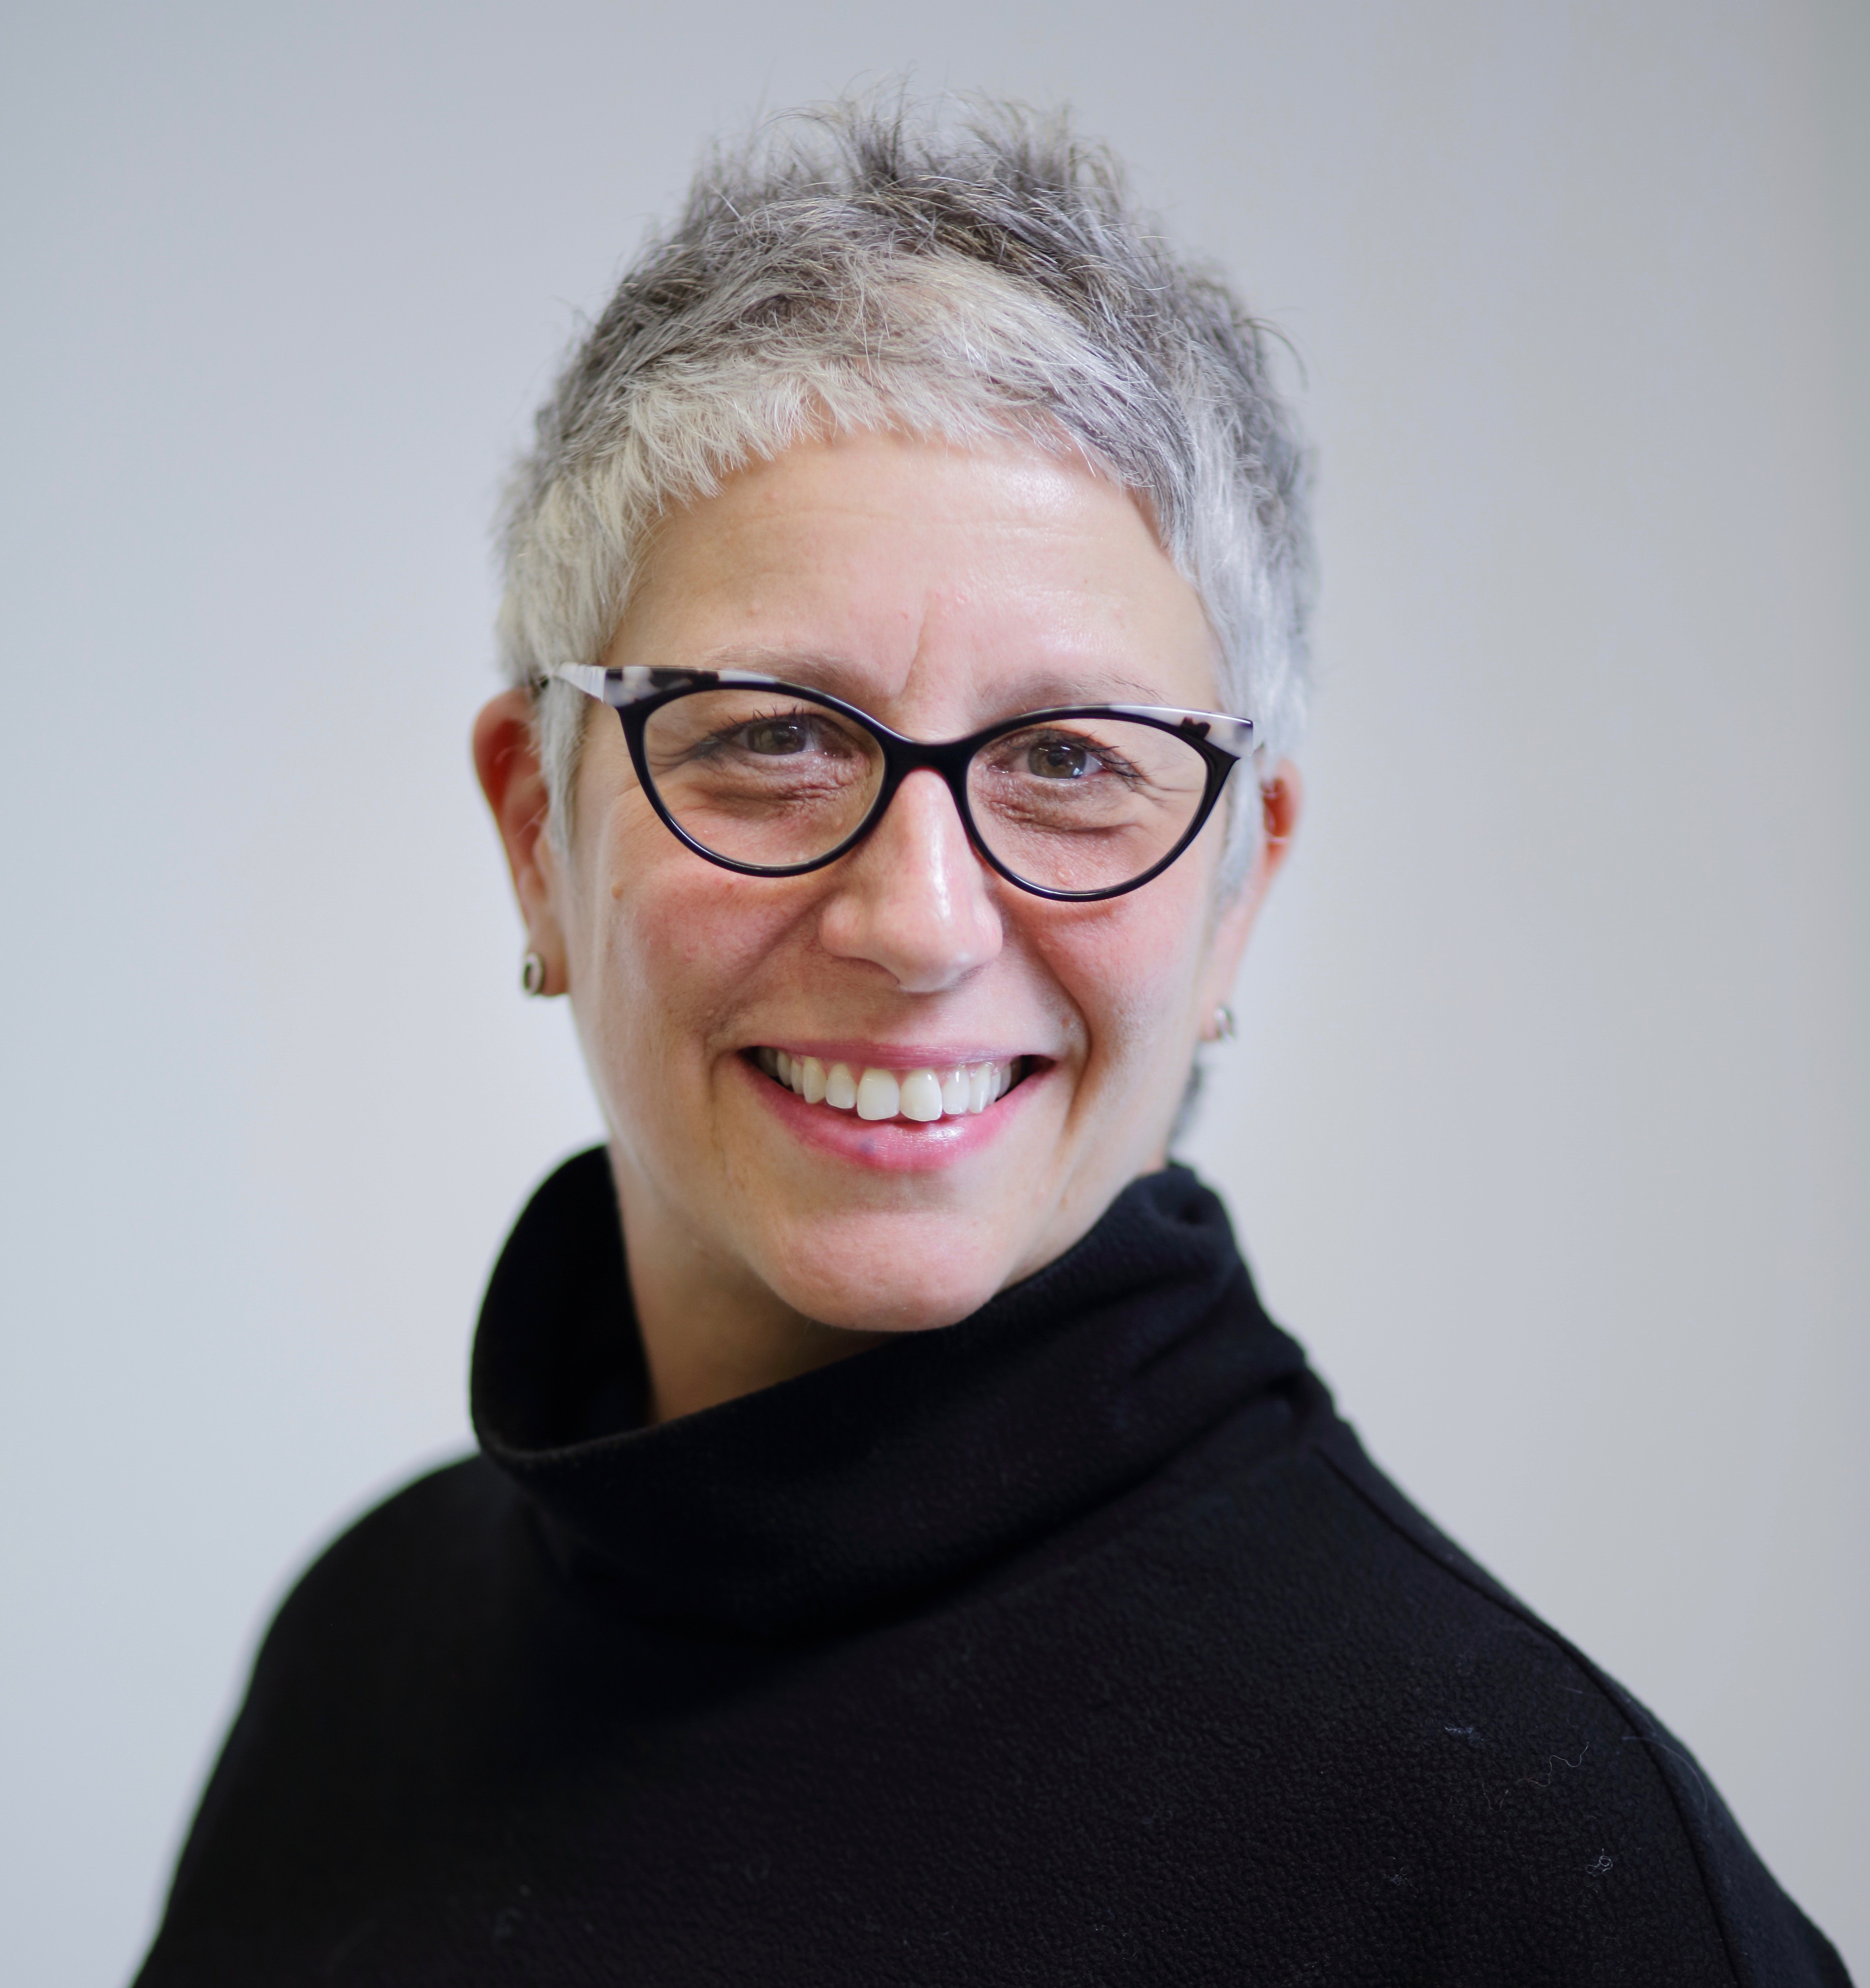 a light-skinned person with short gray hair and black and tortoise-shell cat-eye glasses looks at the camera over her left shoulder. She is smiling with light pink lips and her teeth showing. Her face is lightly wrinkled with brow lines and laugh lines. She wears a black turtleneck and small silver earrings